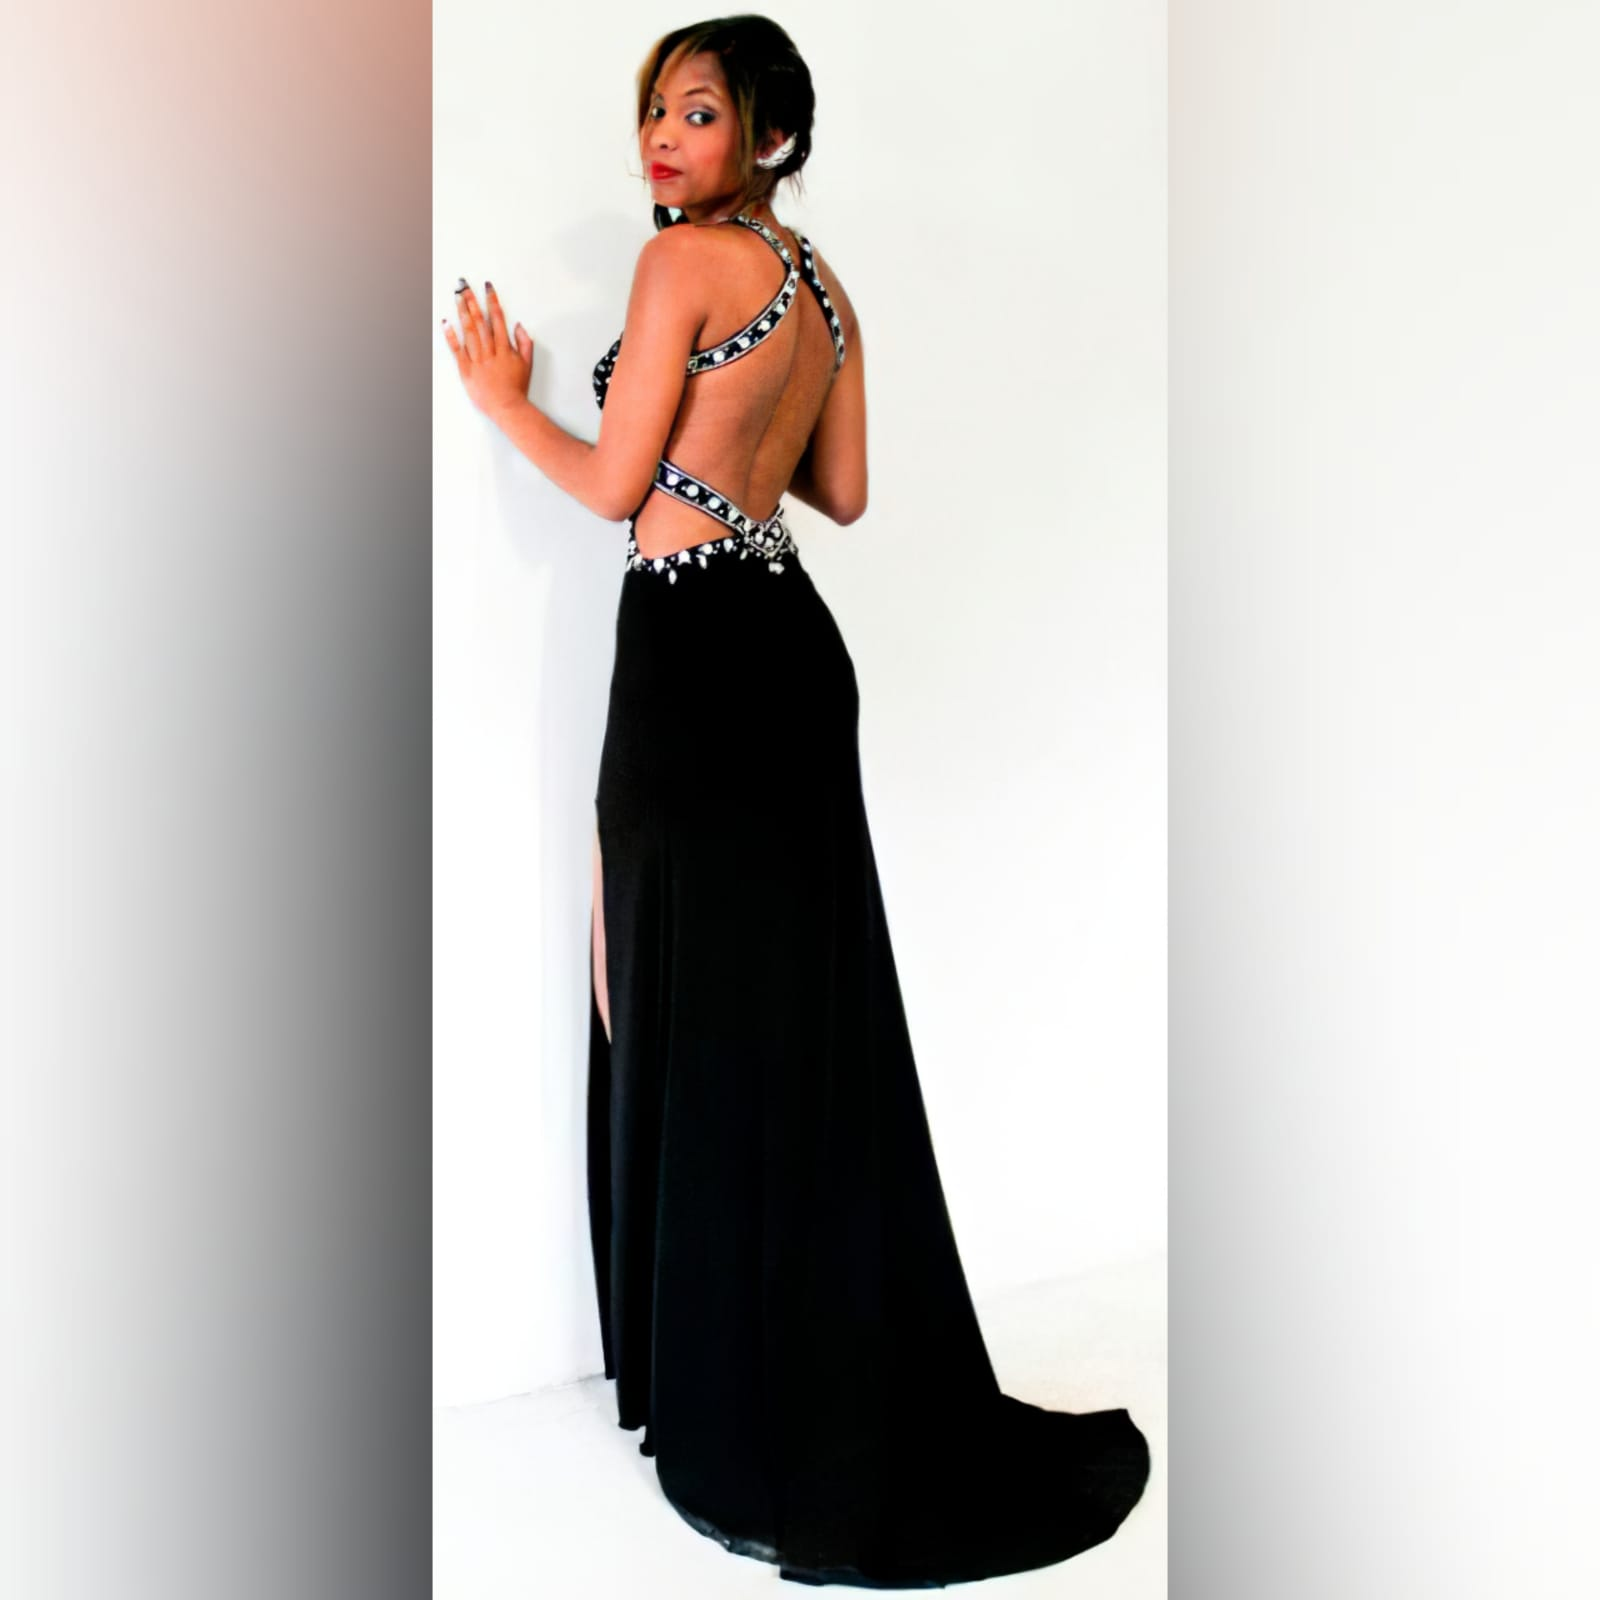 Black and silver prom dress with a slit and a train 6 black & silver prom dress with a slit and a train. Bodice with a sweetheart neckline and a low open back. With detailed silver beadwork through out the bodice